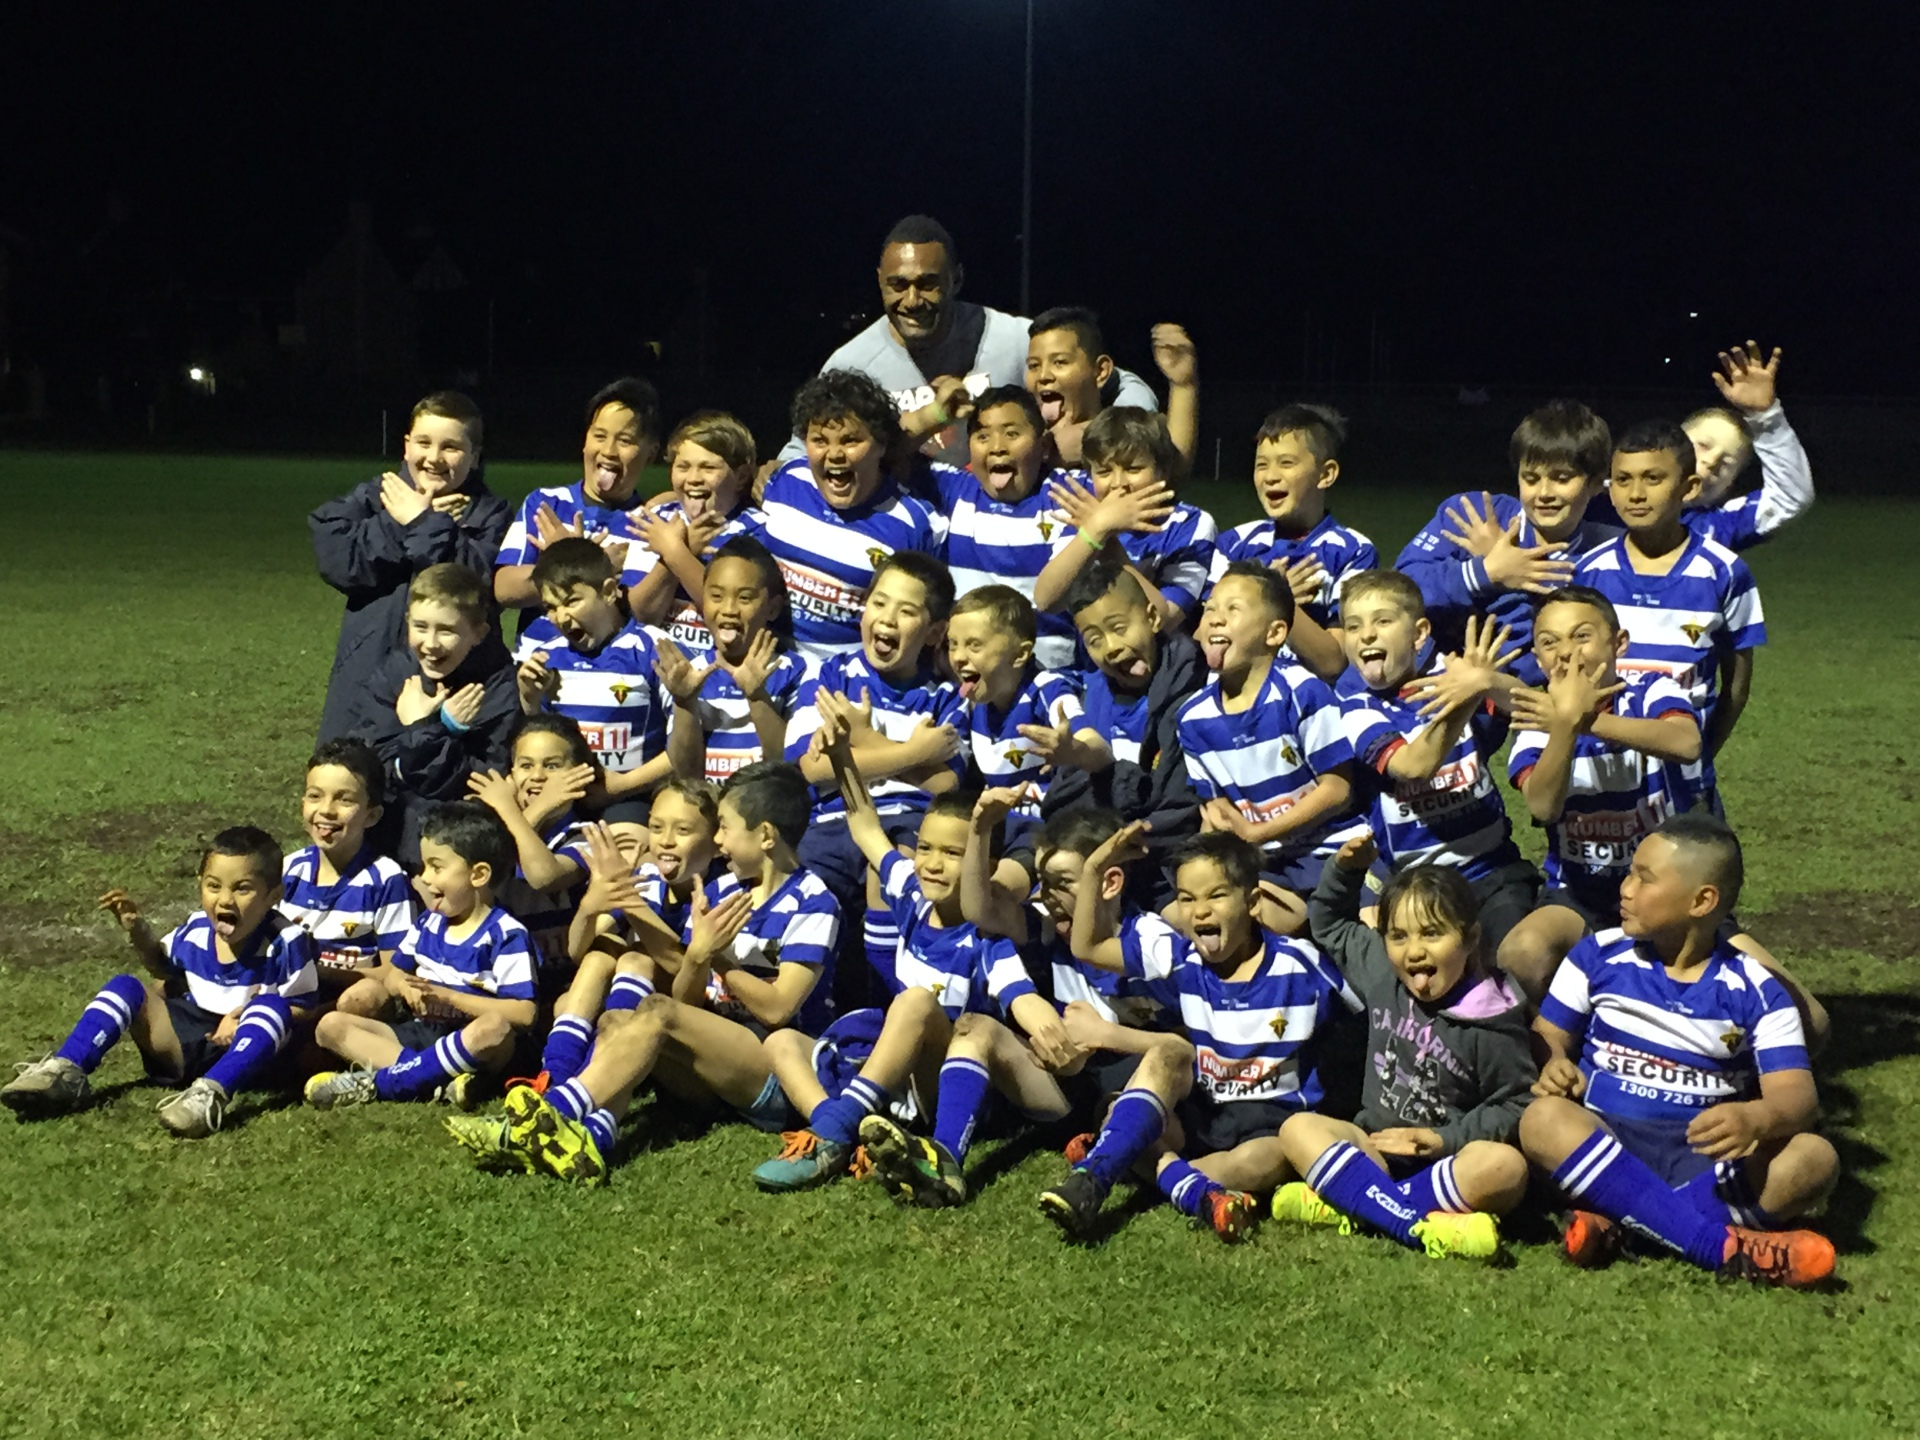 Tevita Kuridrani visits the Rocky boys!